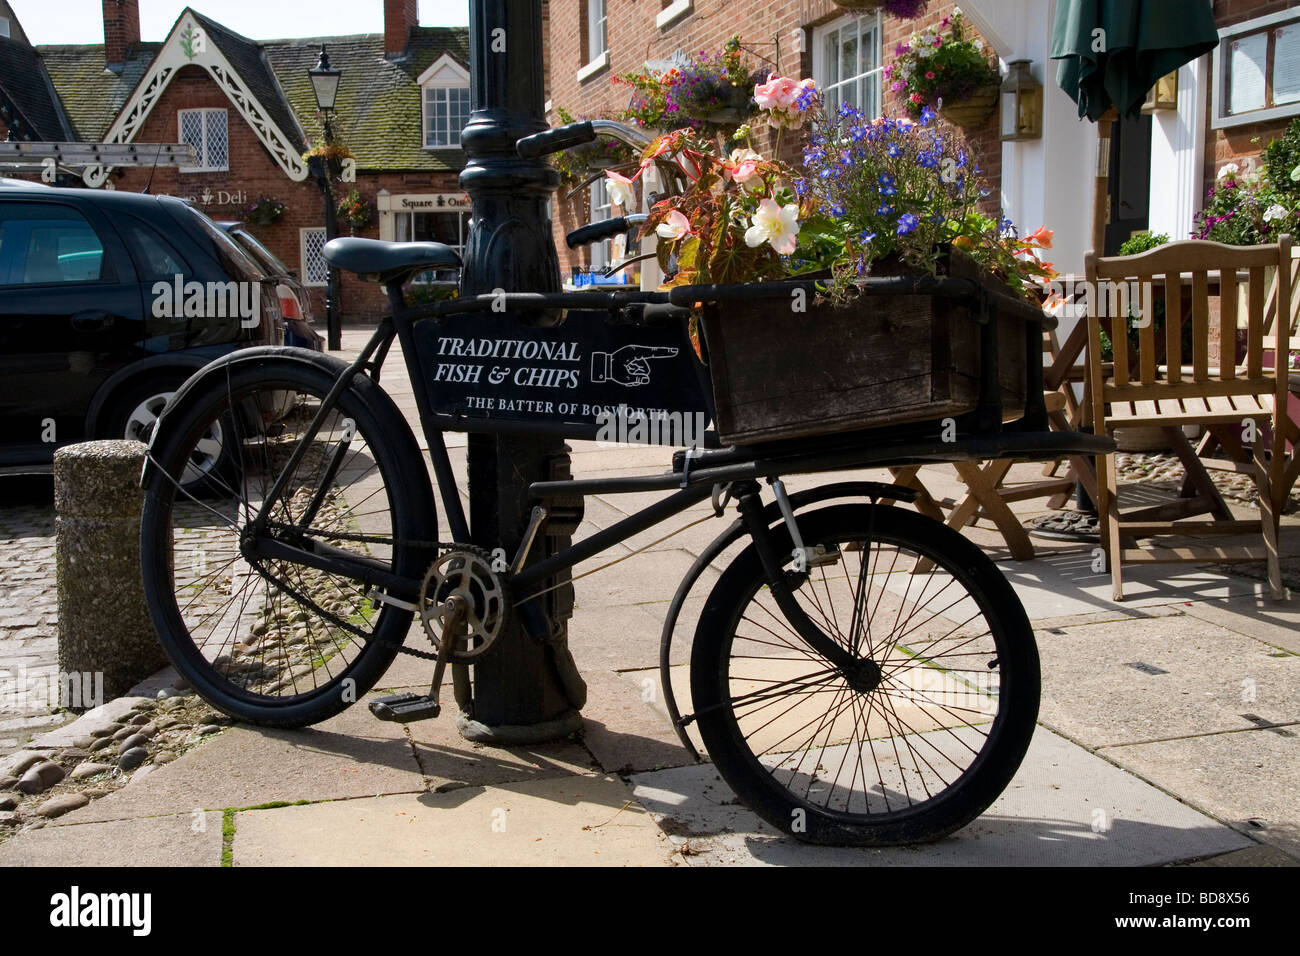 Freshwater fish and chip shop - A Fish And Chip Shop Sign On A Bike In Market Bosworth Stock Image